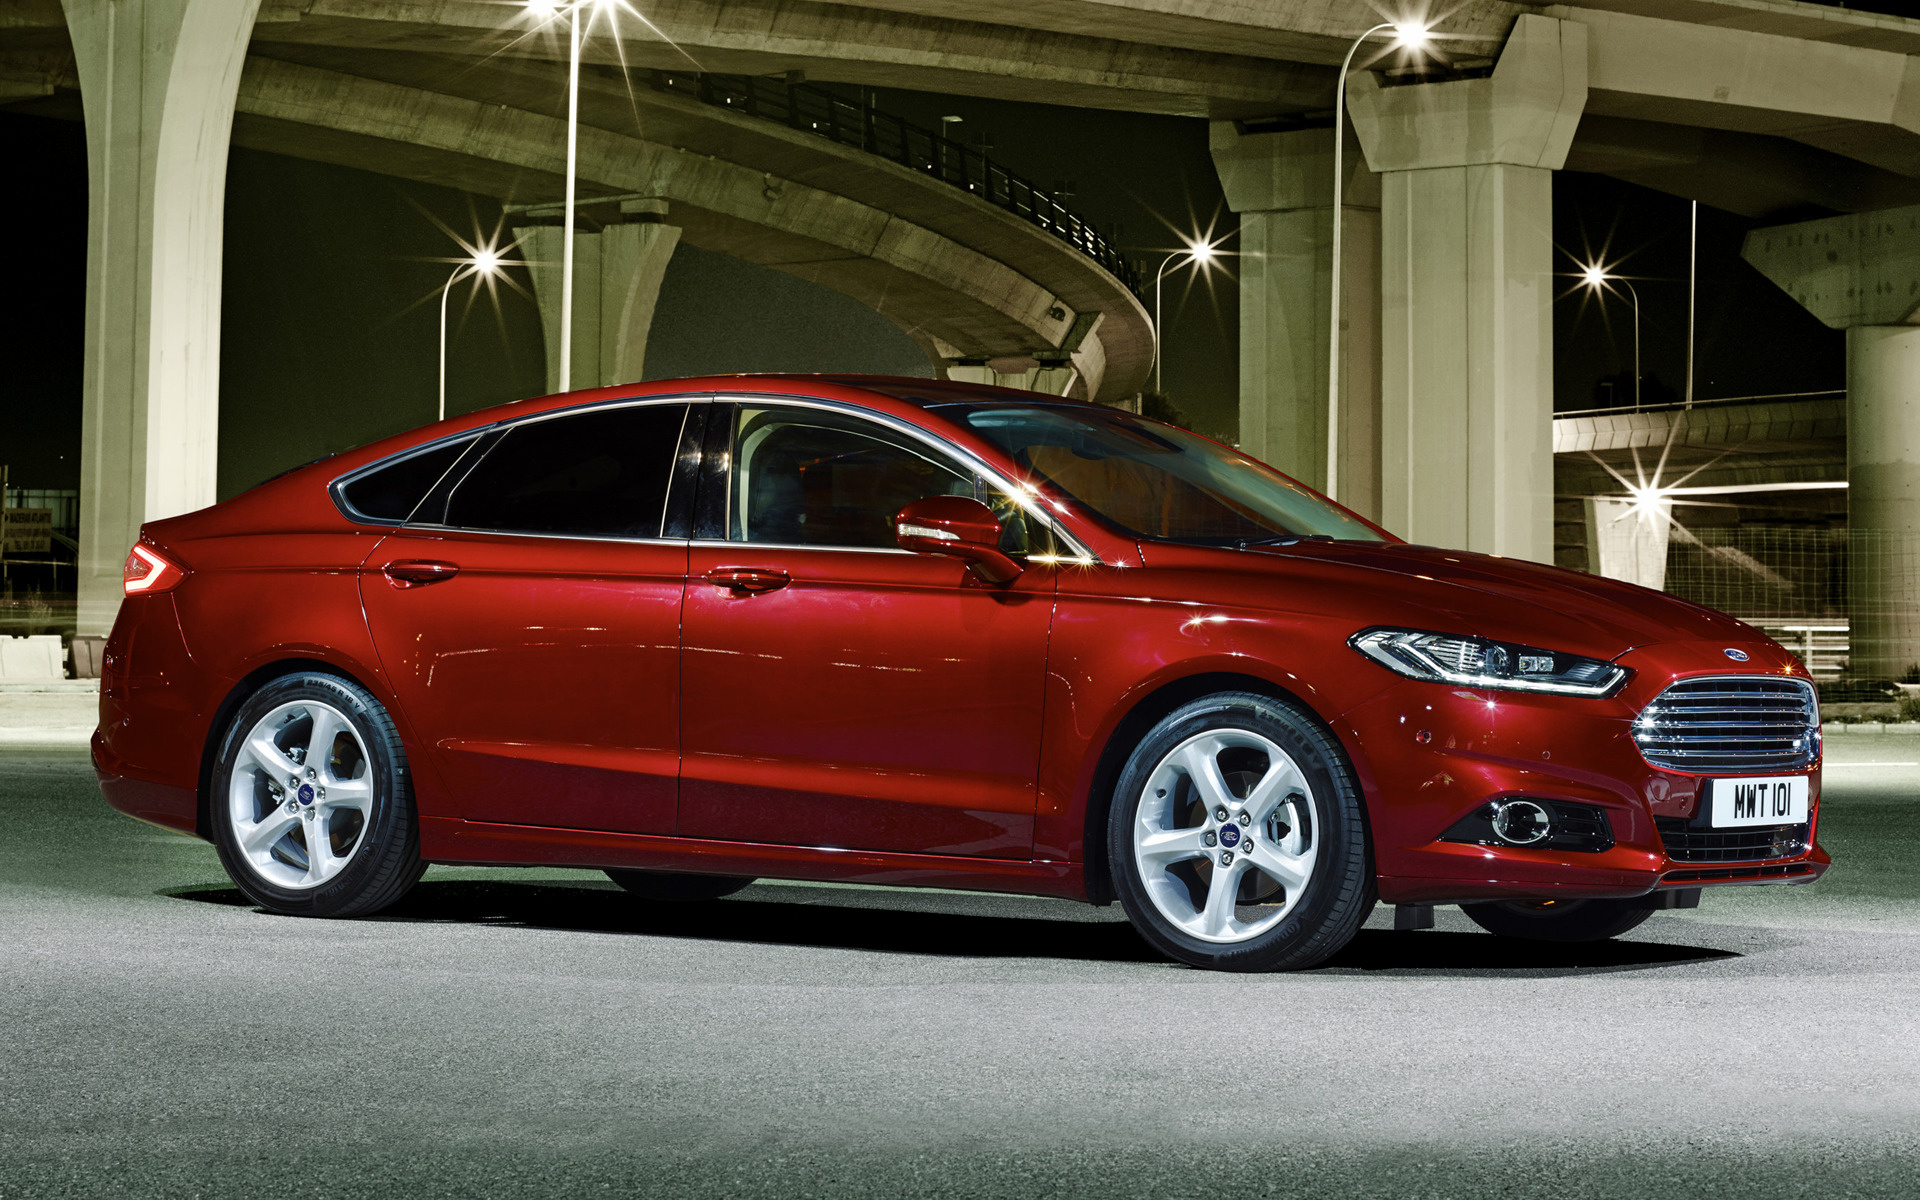 2014 Ford Mondeo Hatchback (UK)